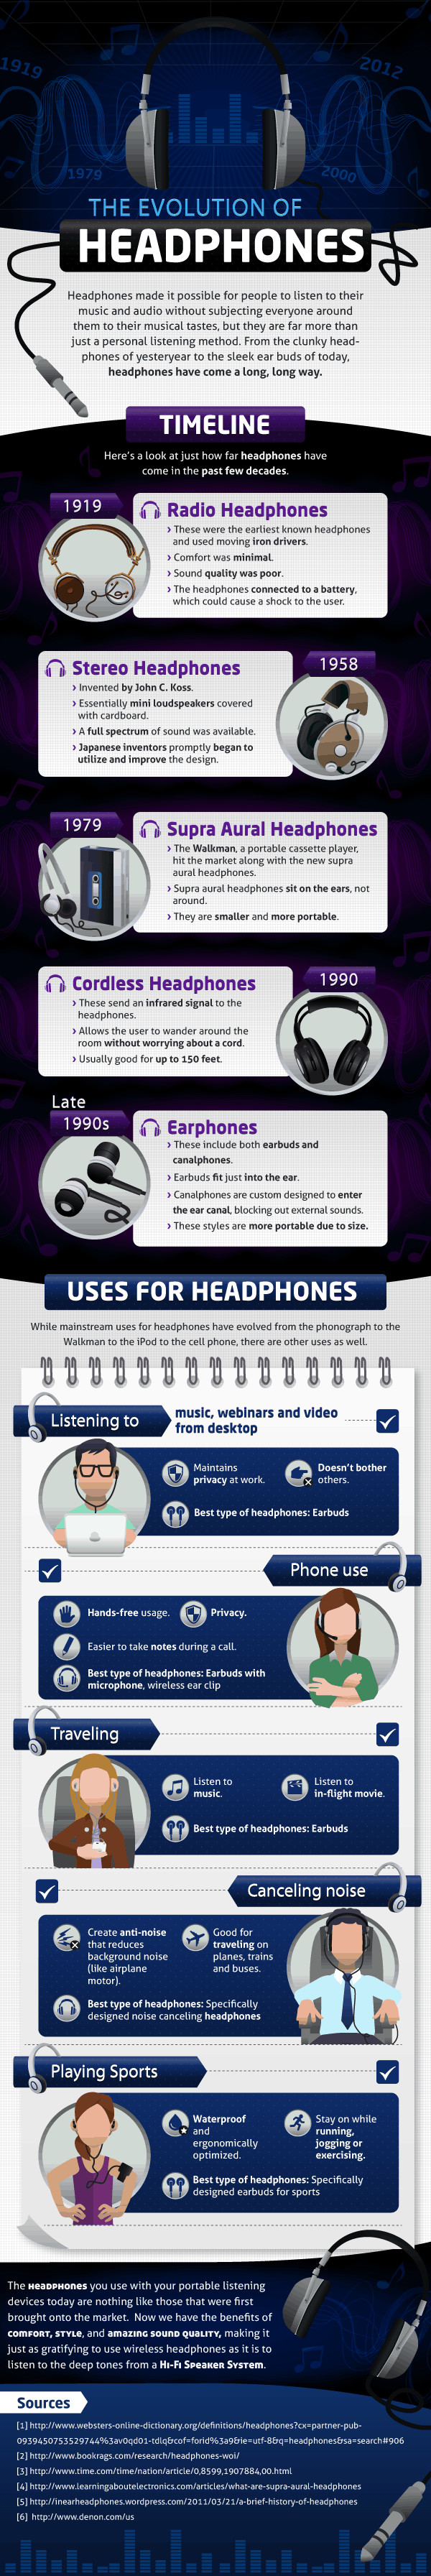 Evolution of Headphones